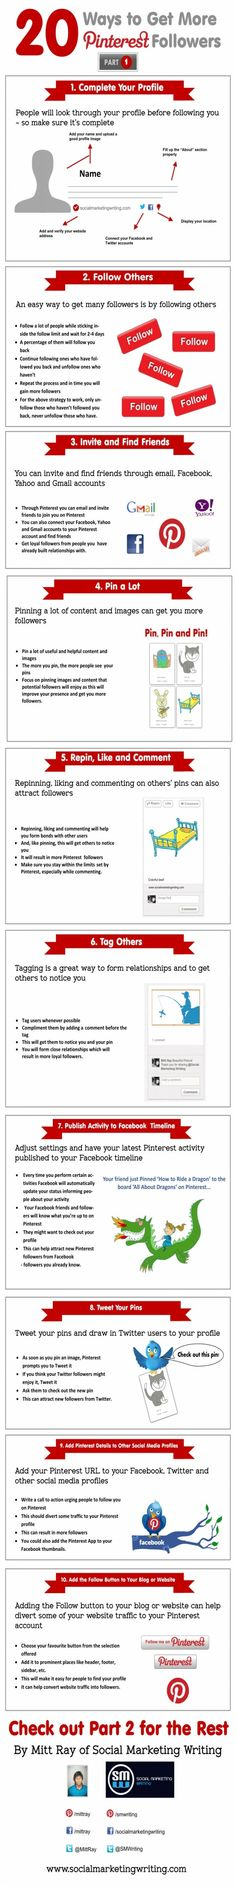 20 Ways To Get More #Pinterest Followers.